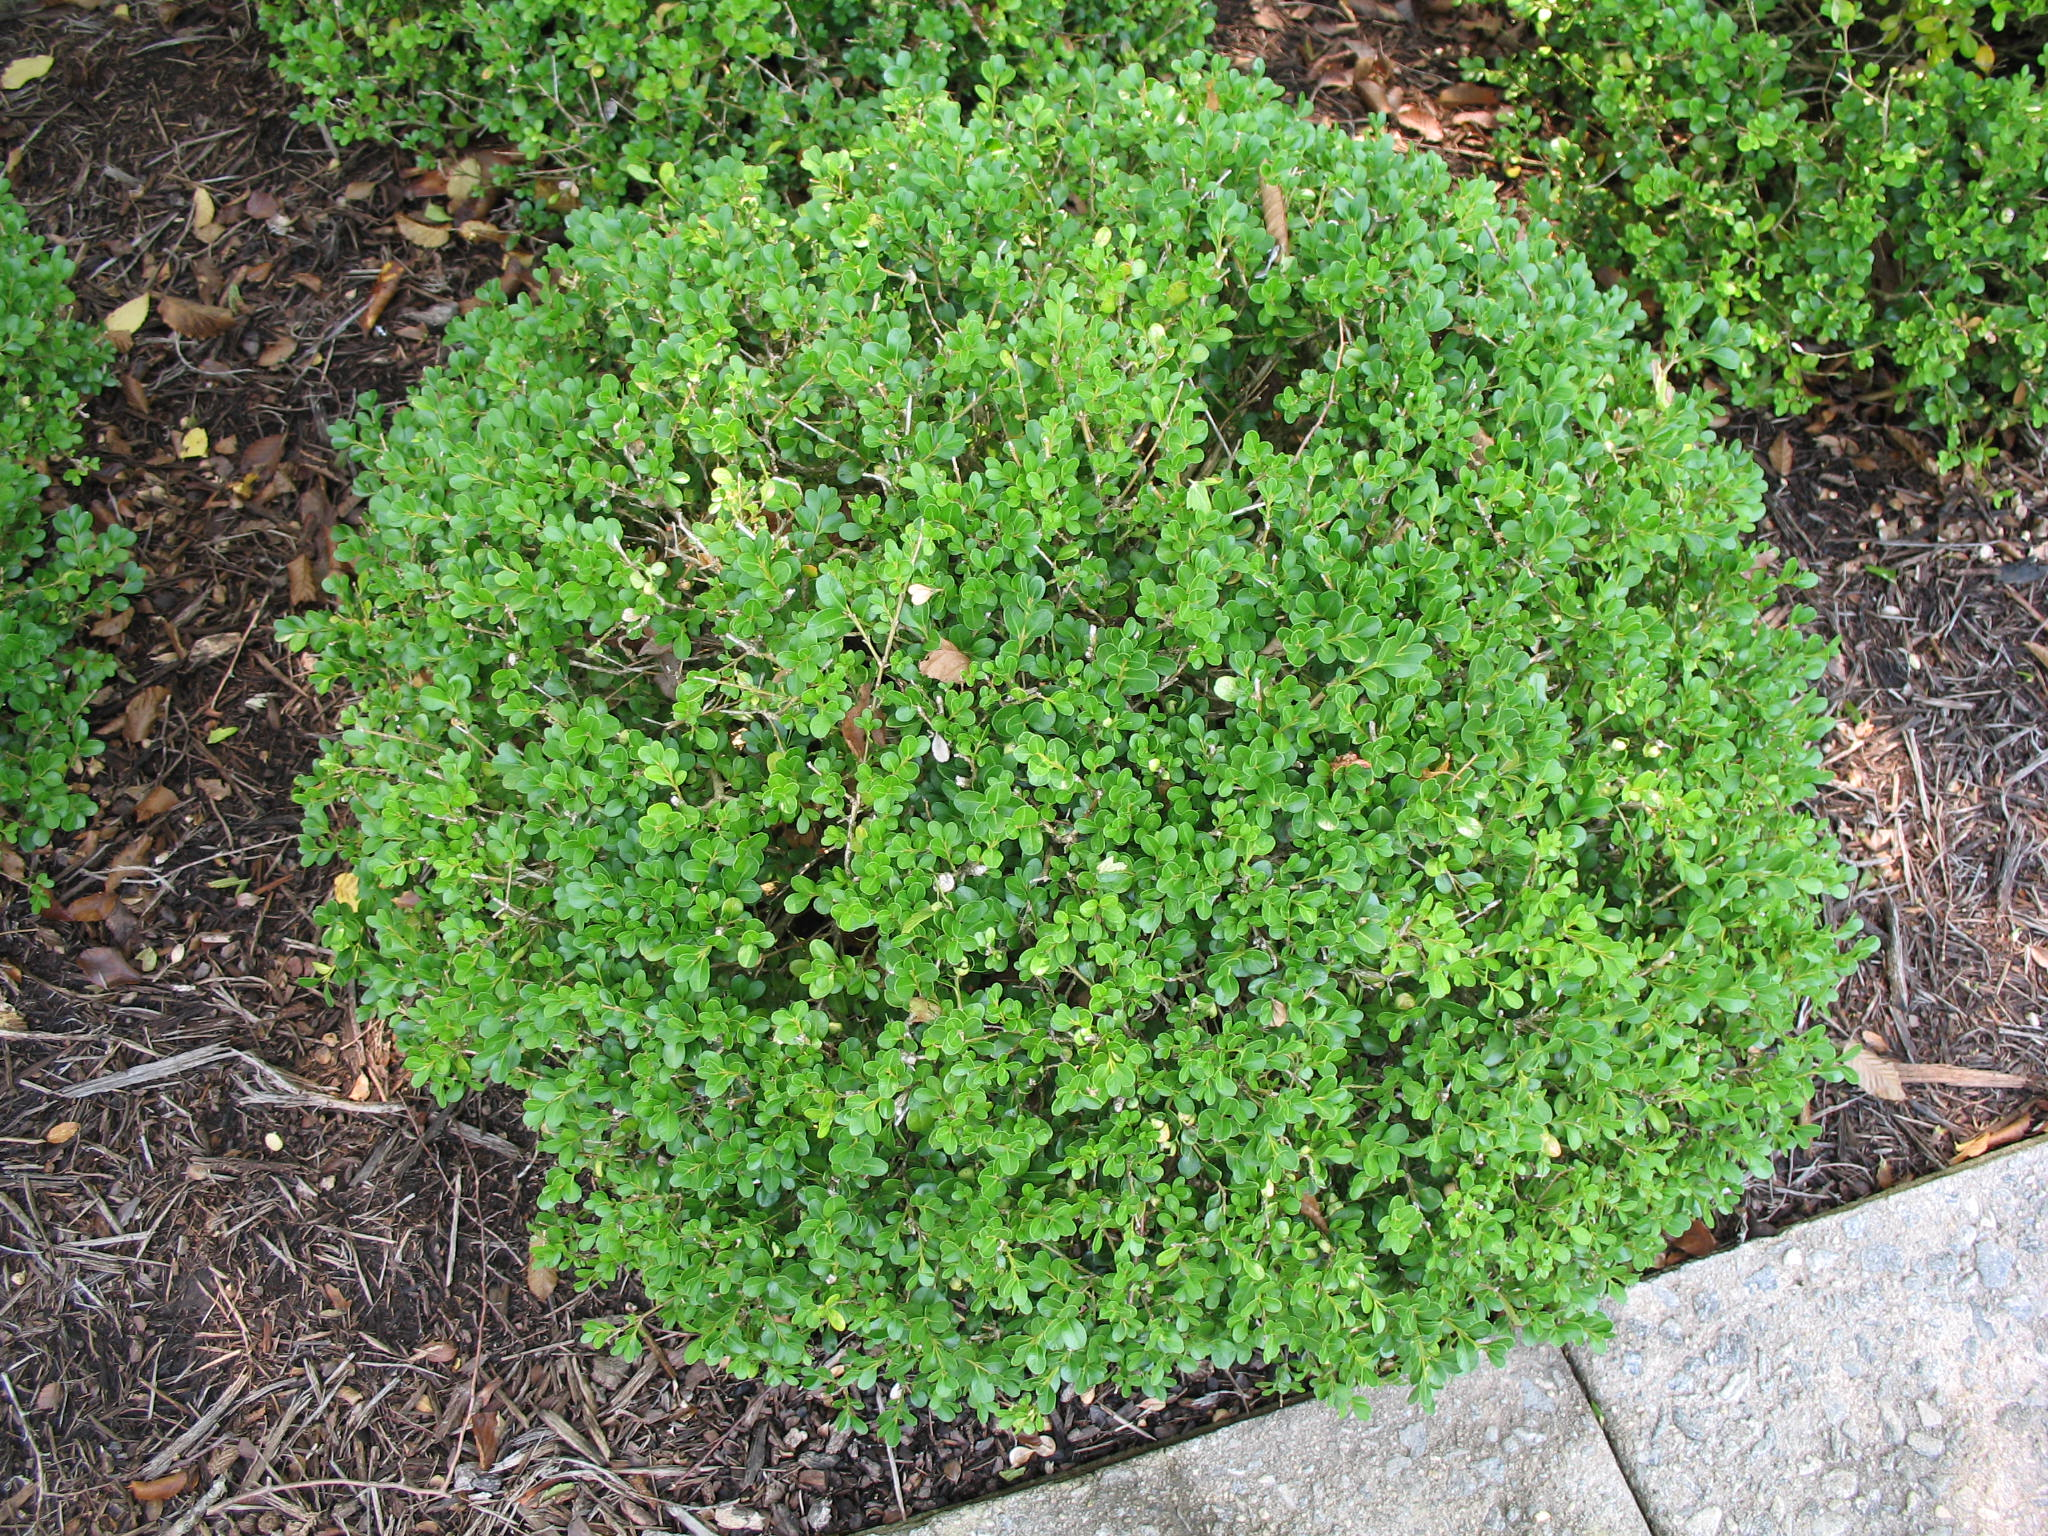 Buxus microphylla 'Green Pillow'   / Buxus microphylla 'Green Pillow'